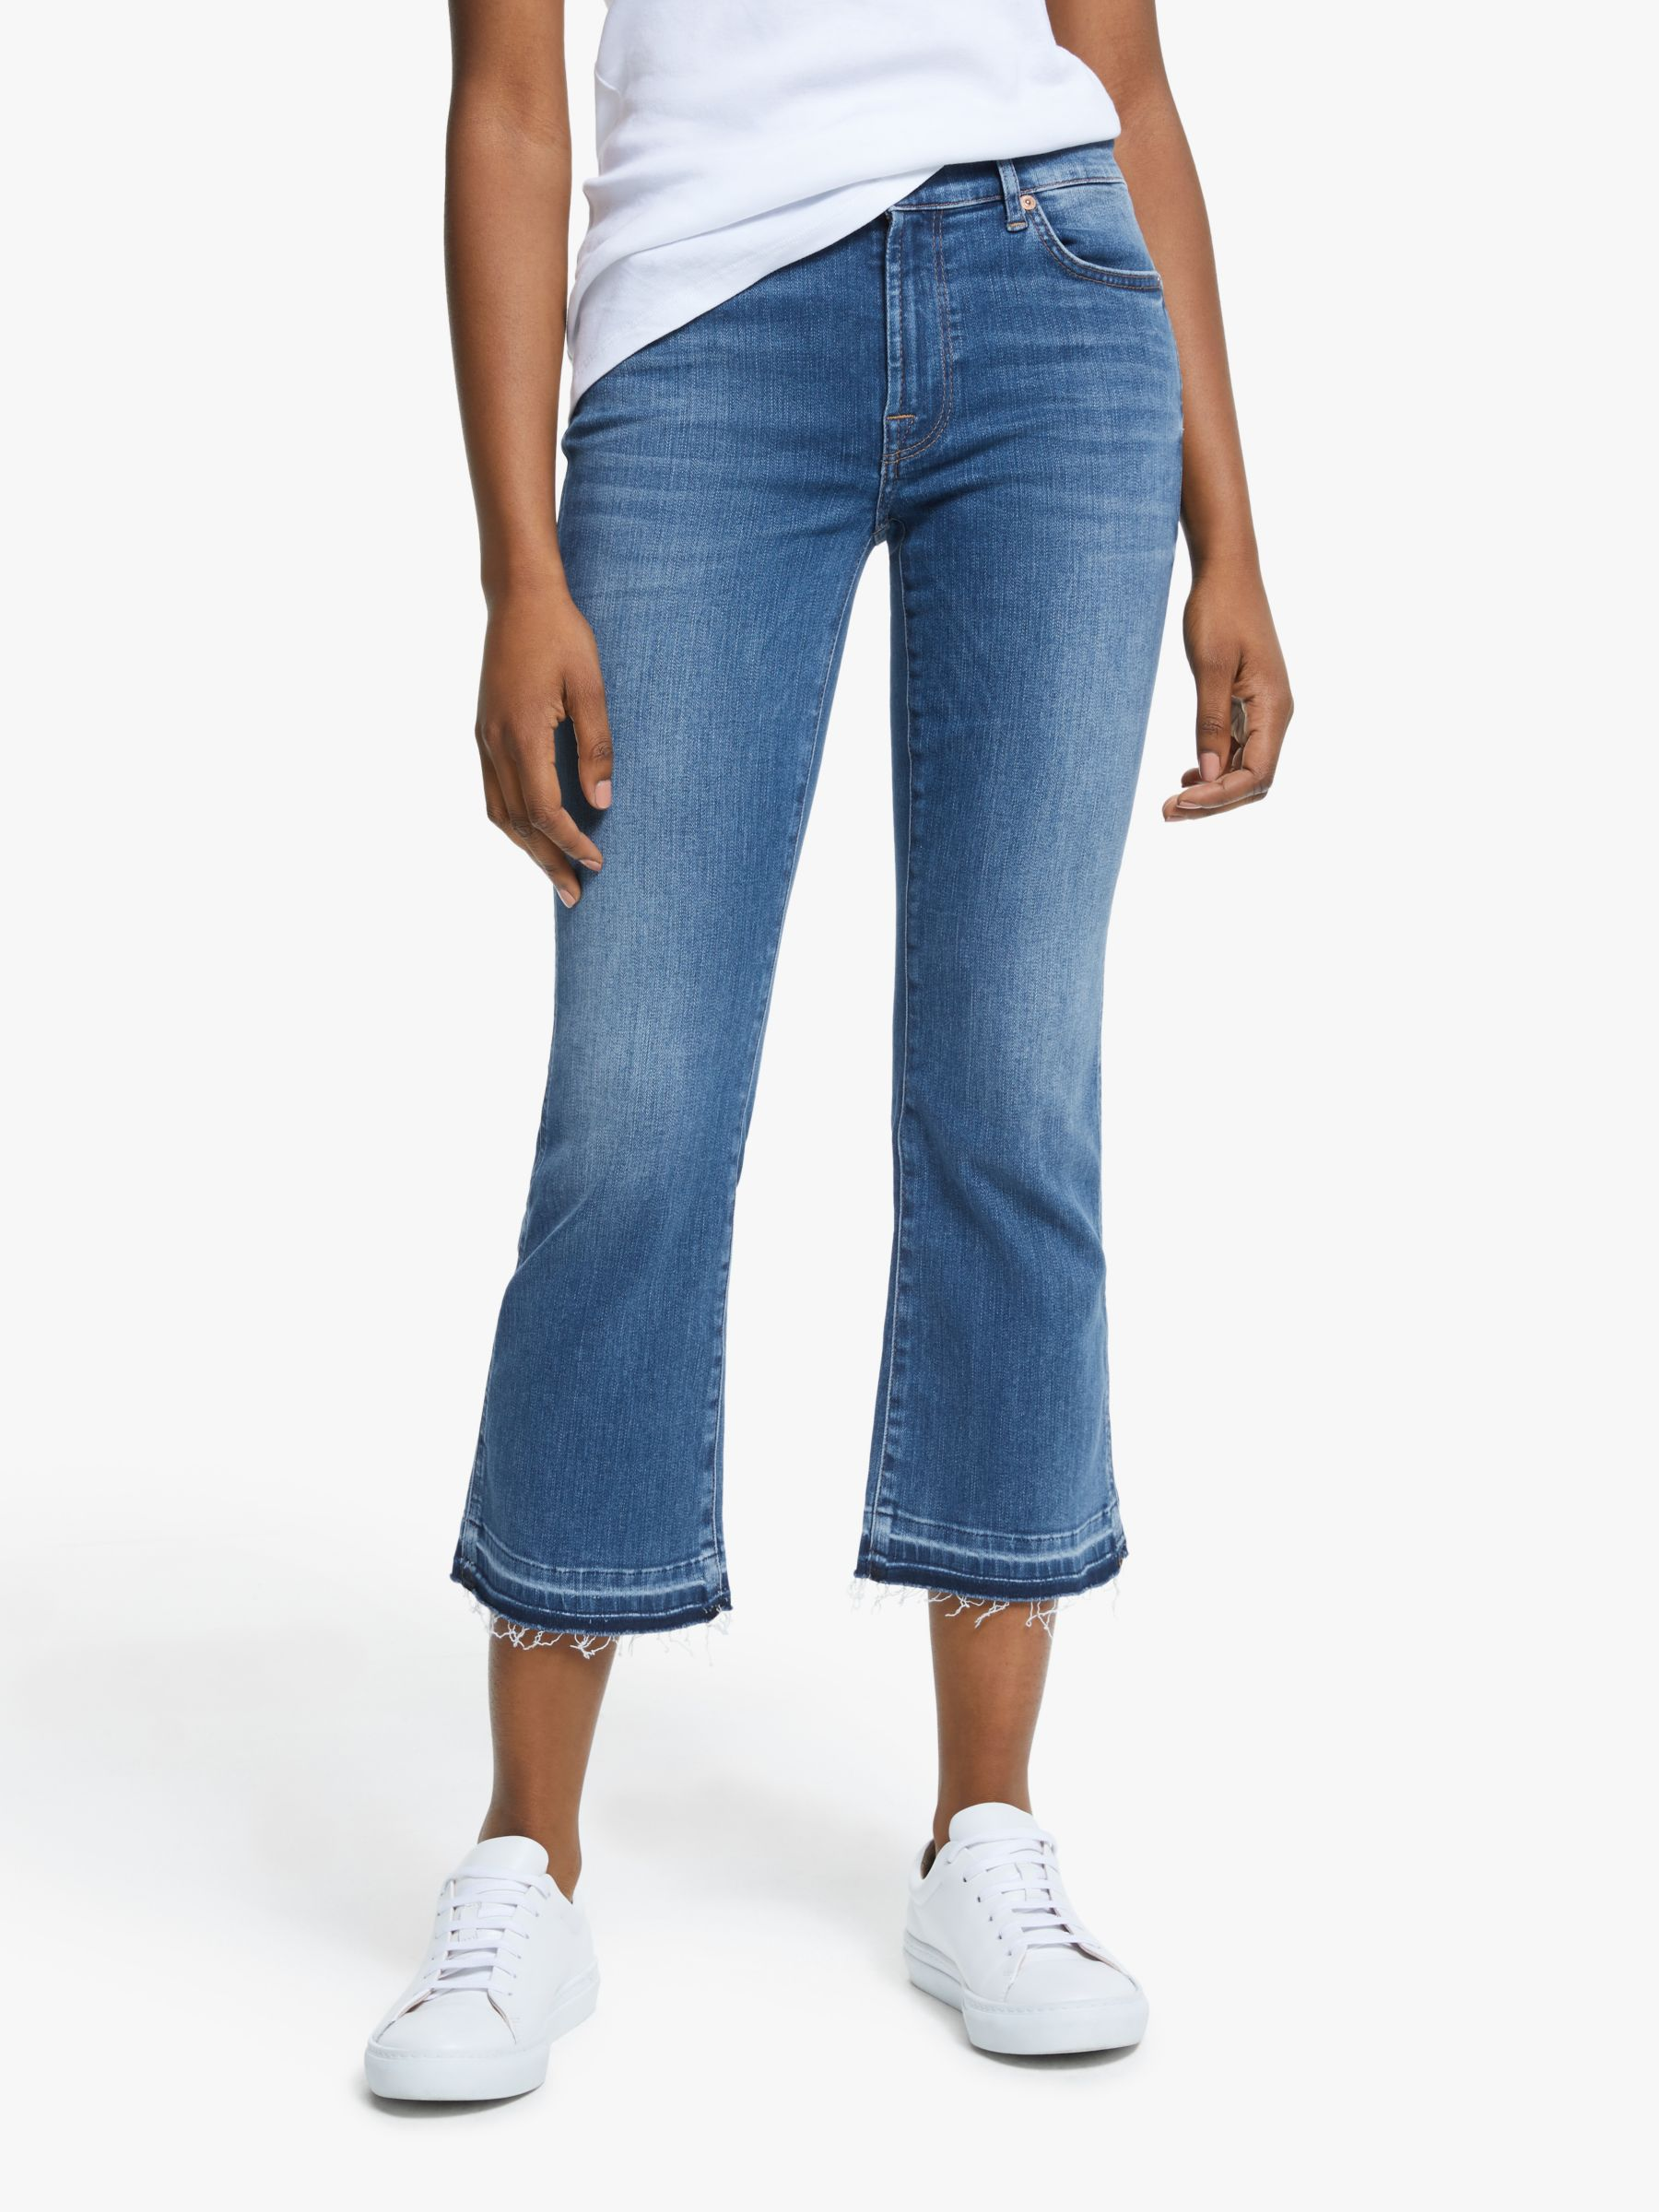 7 For All Mankind 7 For All Mankind Slim Illusion Cropped Bootcut Jeans, Possessed Mid Blue